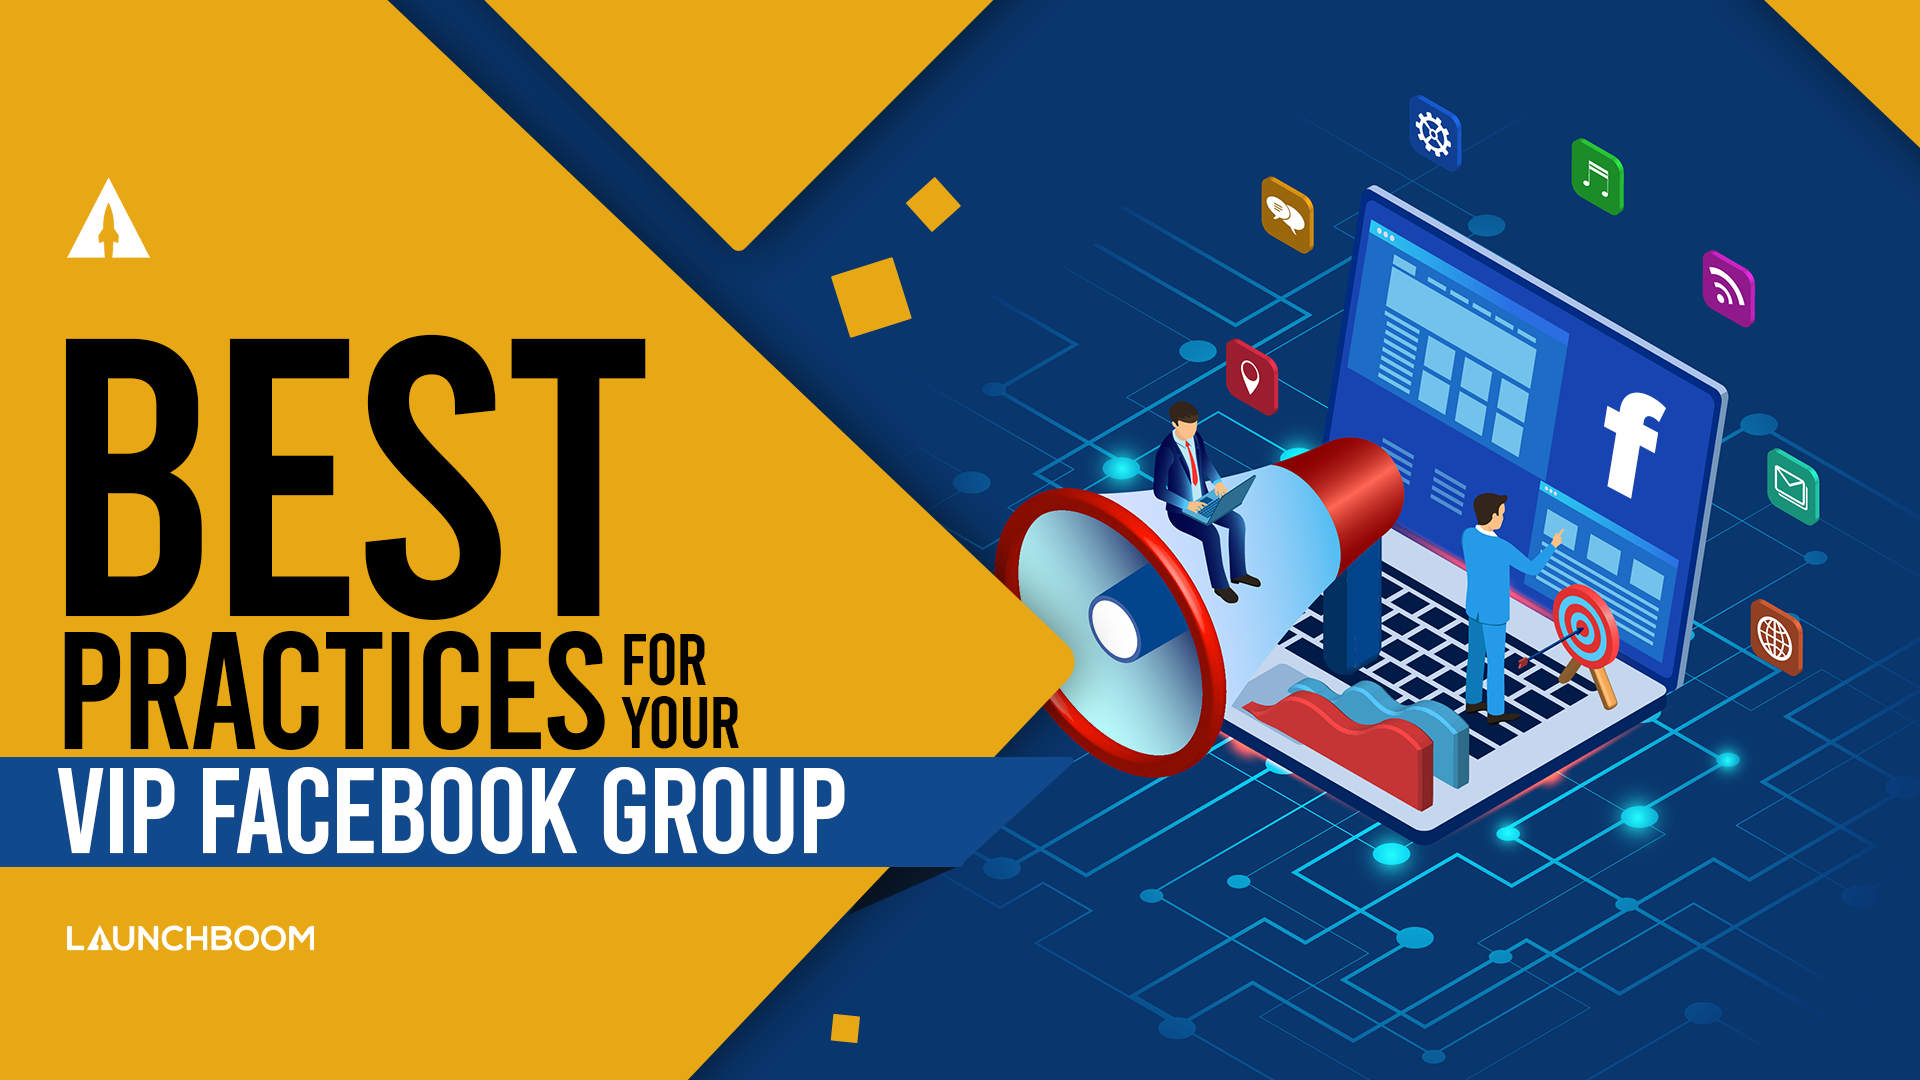 Best practices for your VIP Facebook group